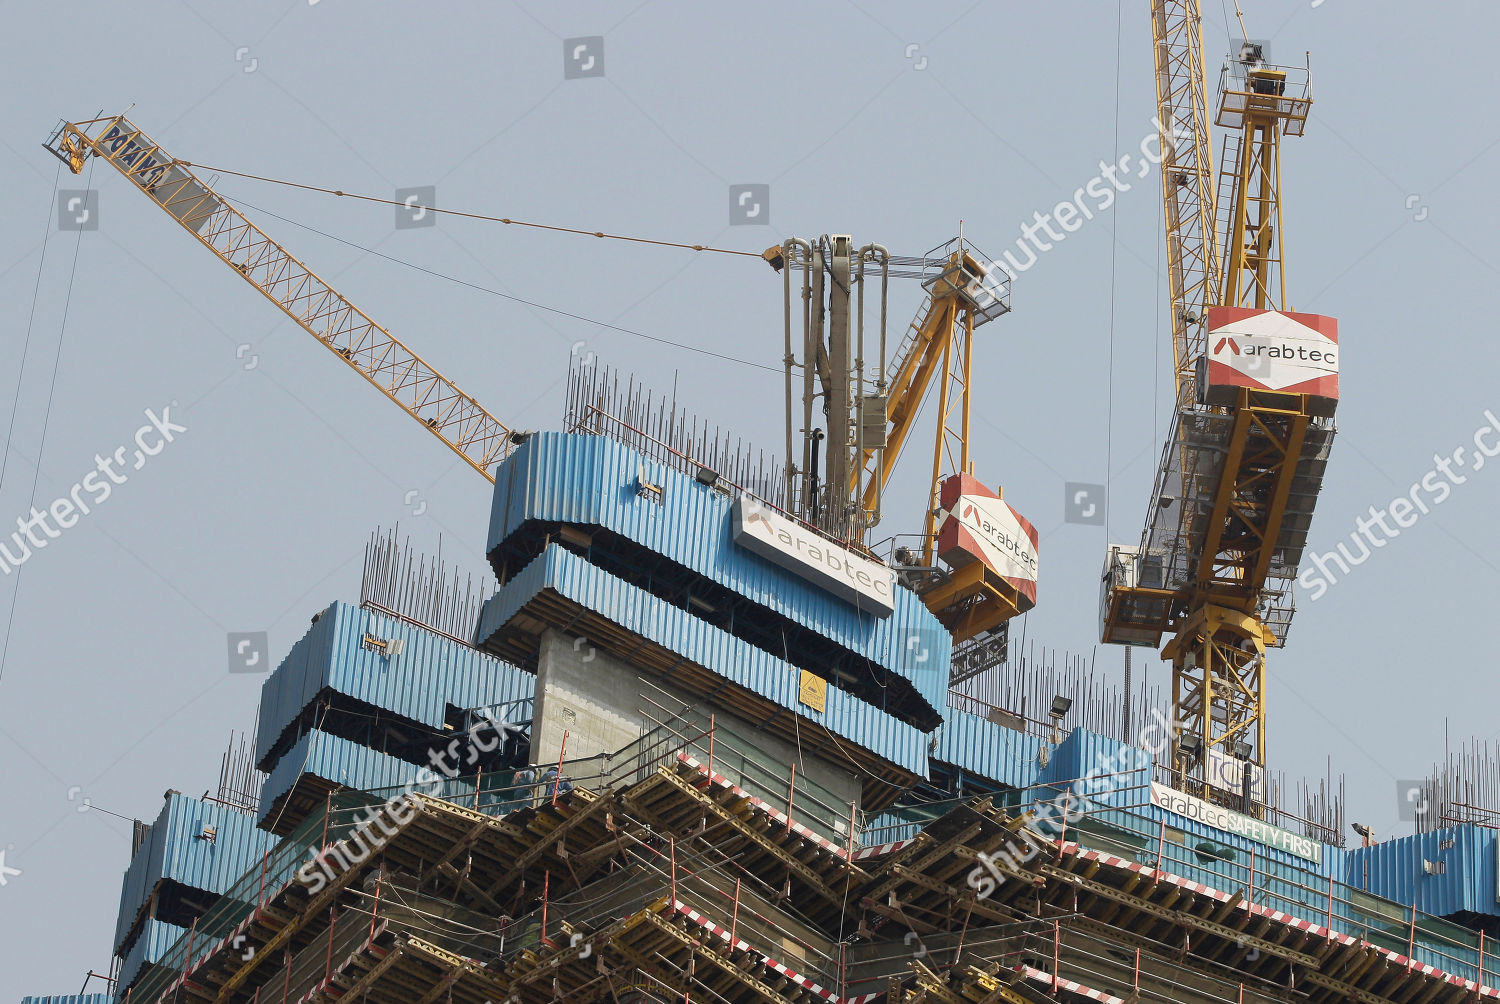 Workers operate cranes Arabtec construction company on Editorial